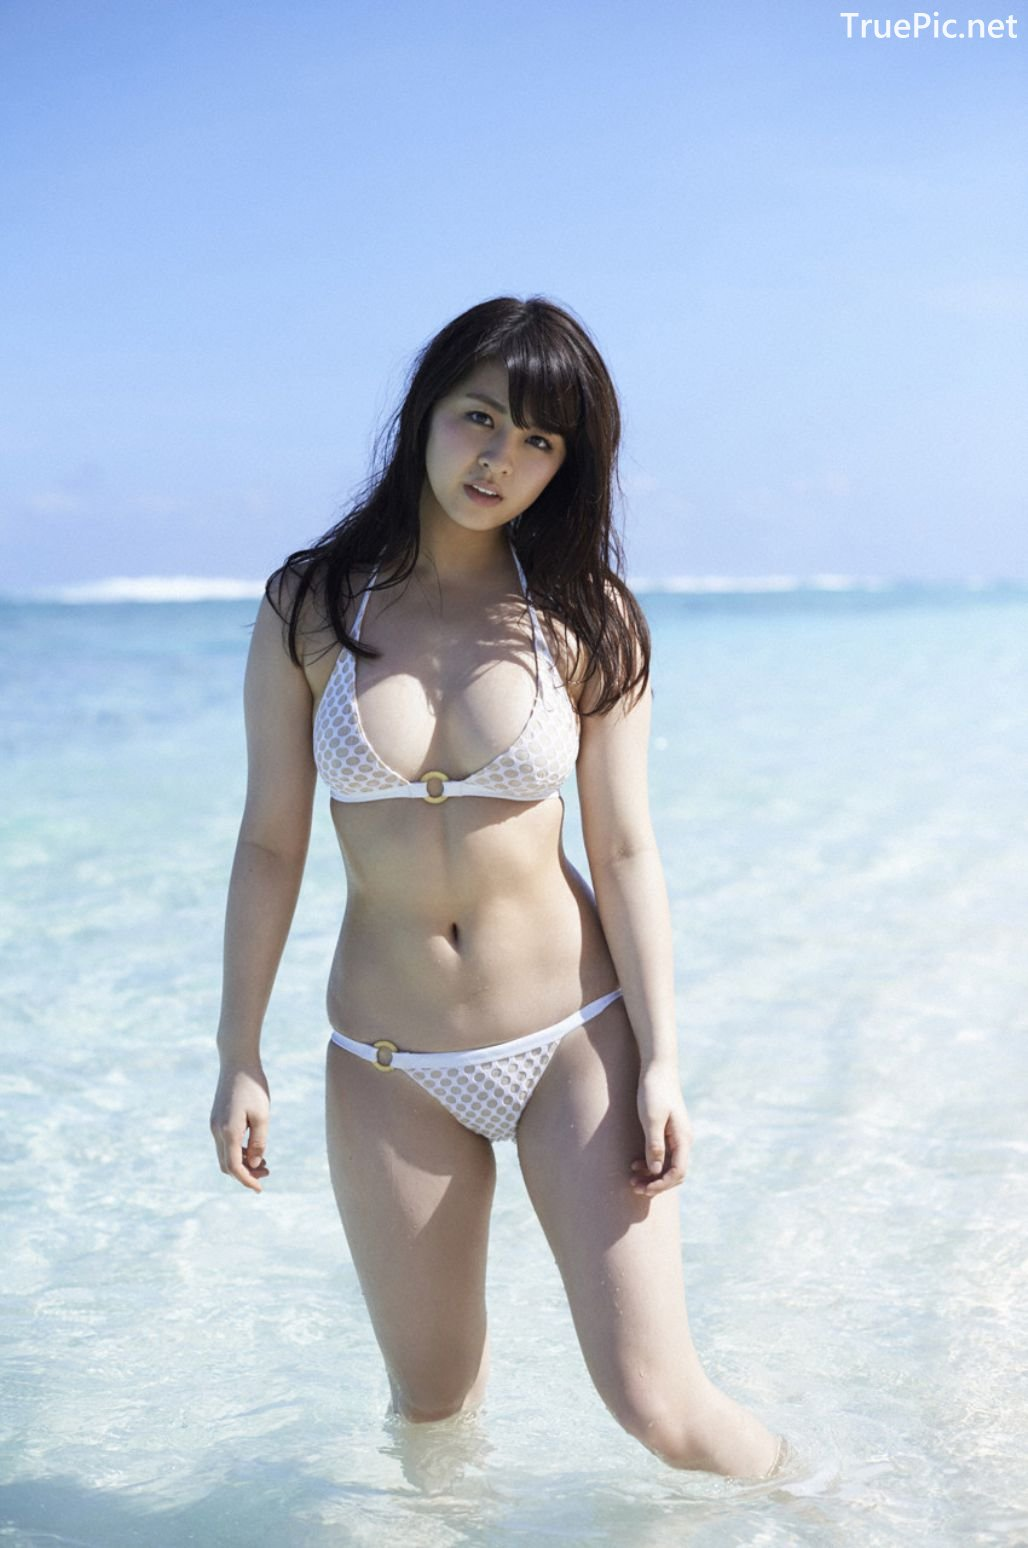 Image-Japanese-Actress-And-Model-Yurina-Yanagi-Blue-Sea-And-Hot-Bikini-Girl-TruePic.net- Picture-7